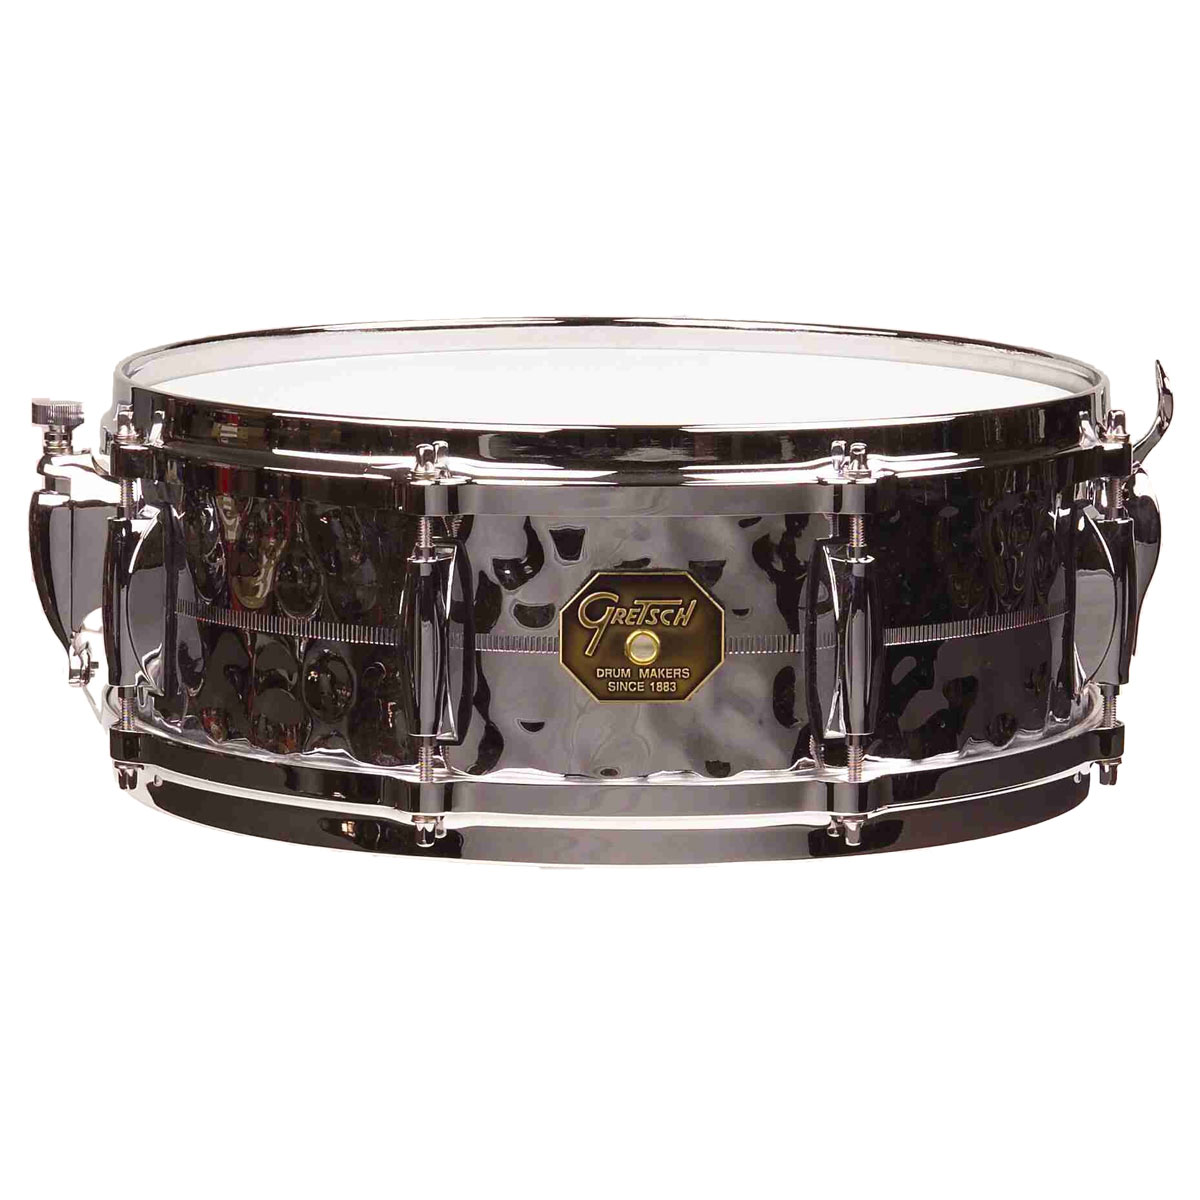 "Gretsch 5"" x 14"" USA Metal Hammered Chrome Over Brass Snare Drum"